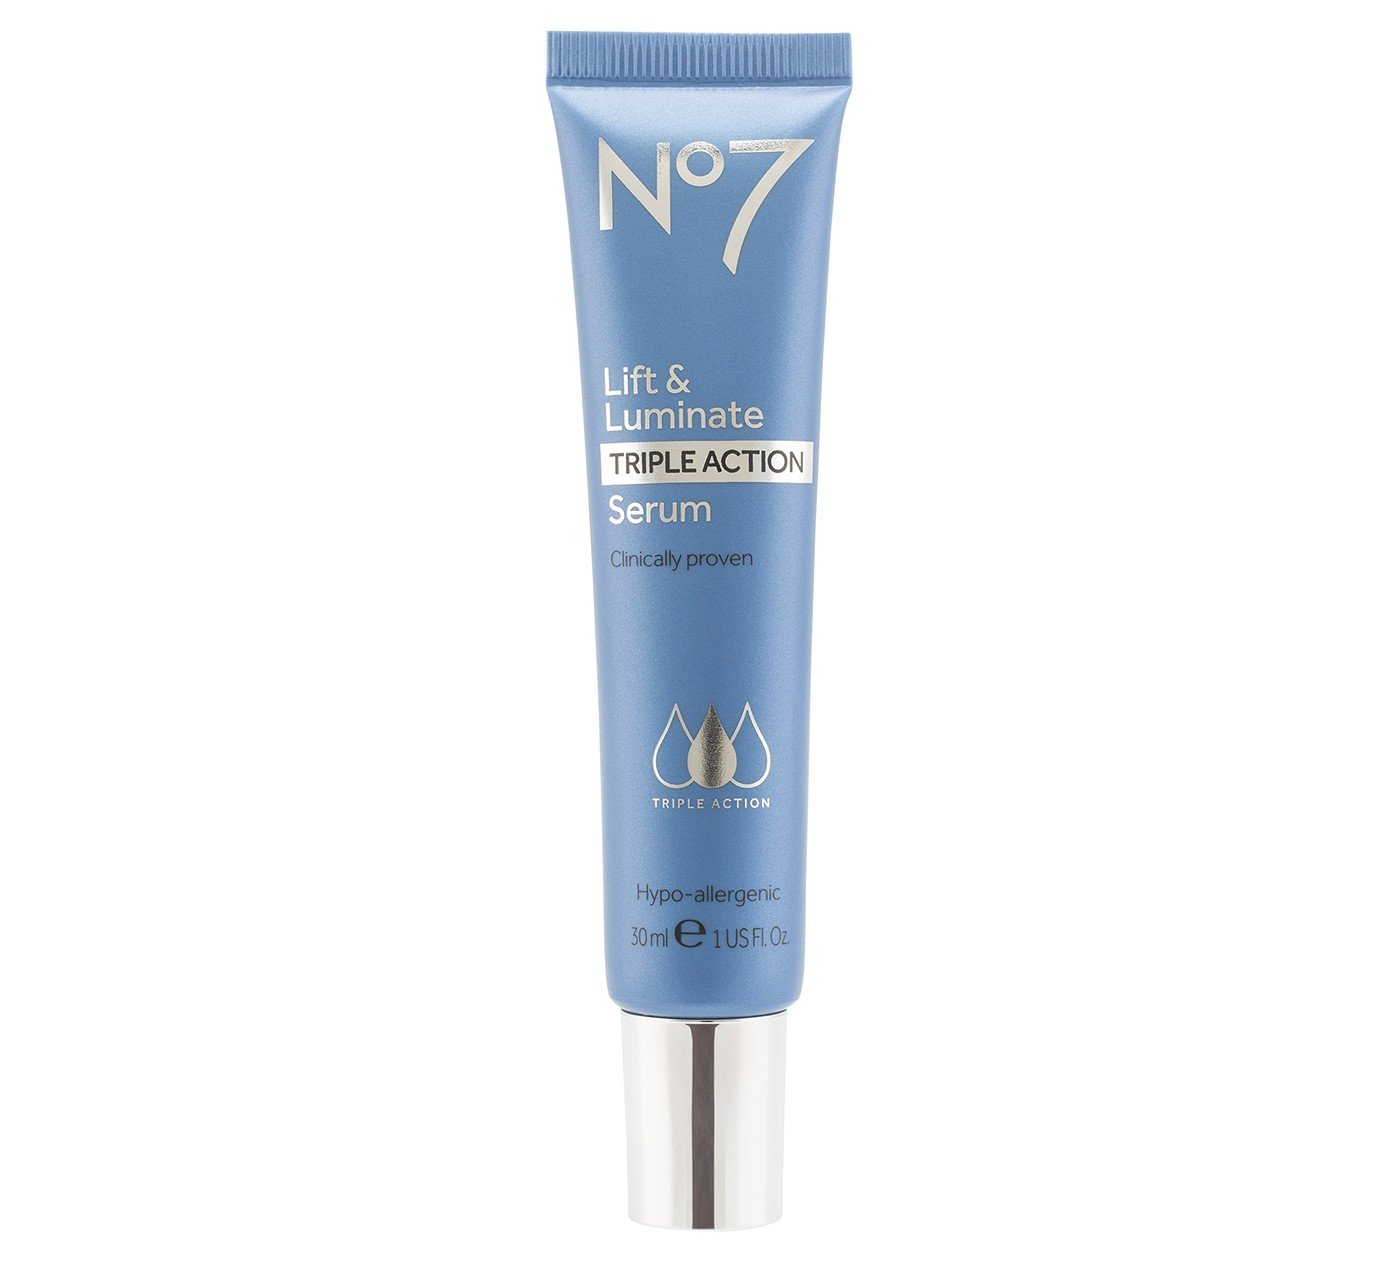 Boots No7 Lift Luminate Triple Action Serum 30ml Visibly Reduces Wrinkles Amazon In Beauty